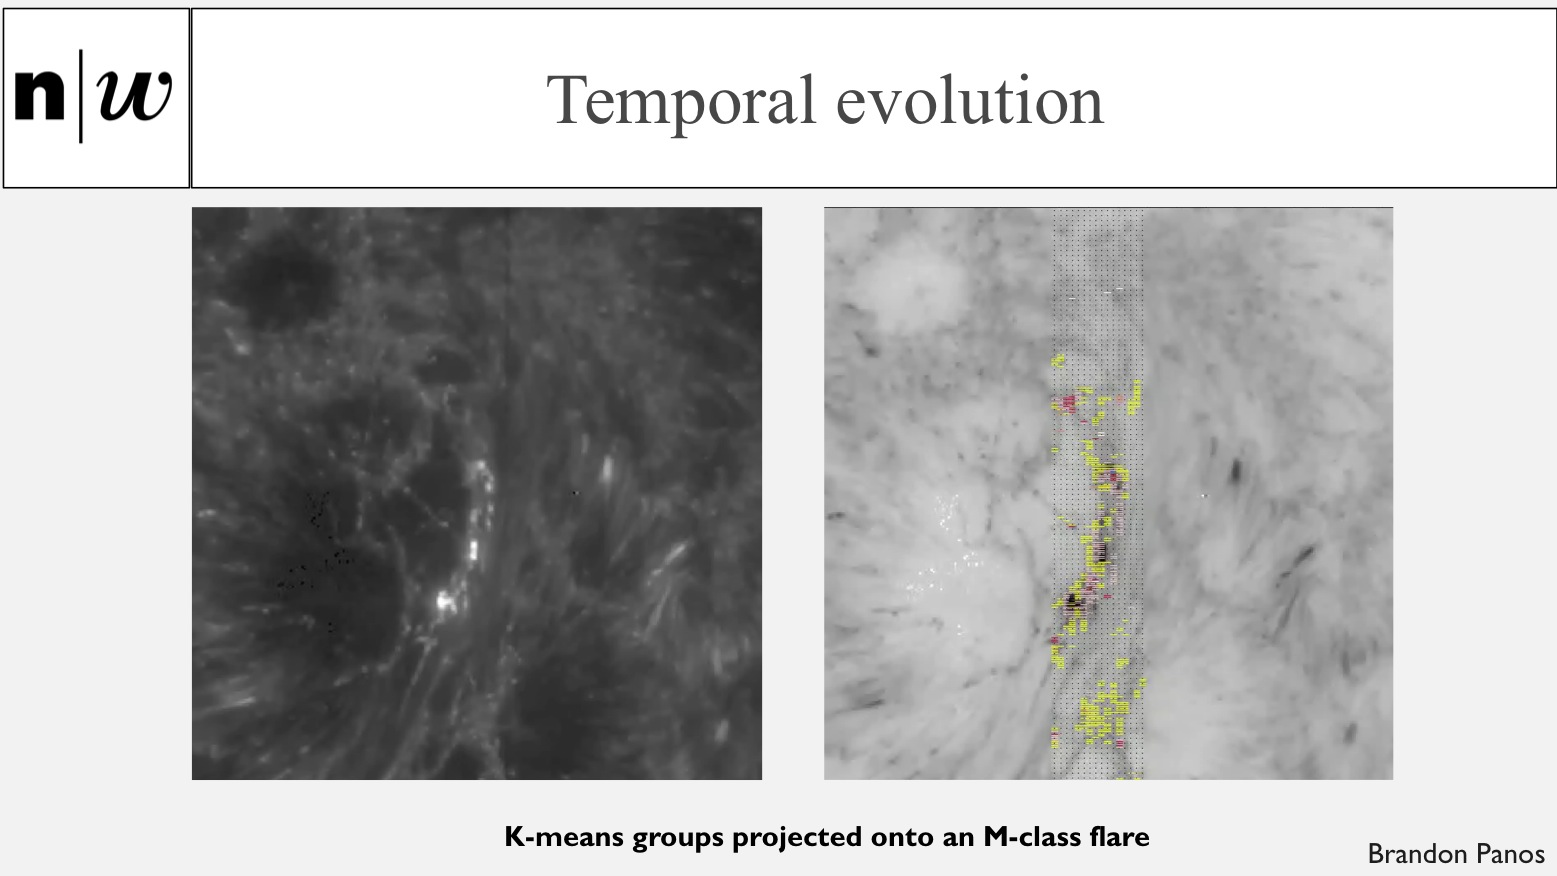 Temporal evolution: K-means groups projected onto an M-class flare